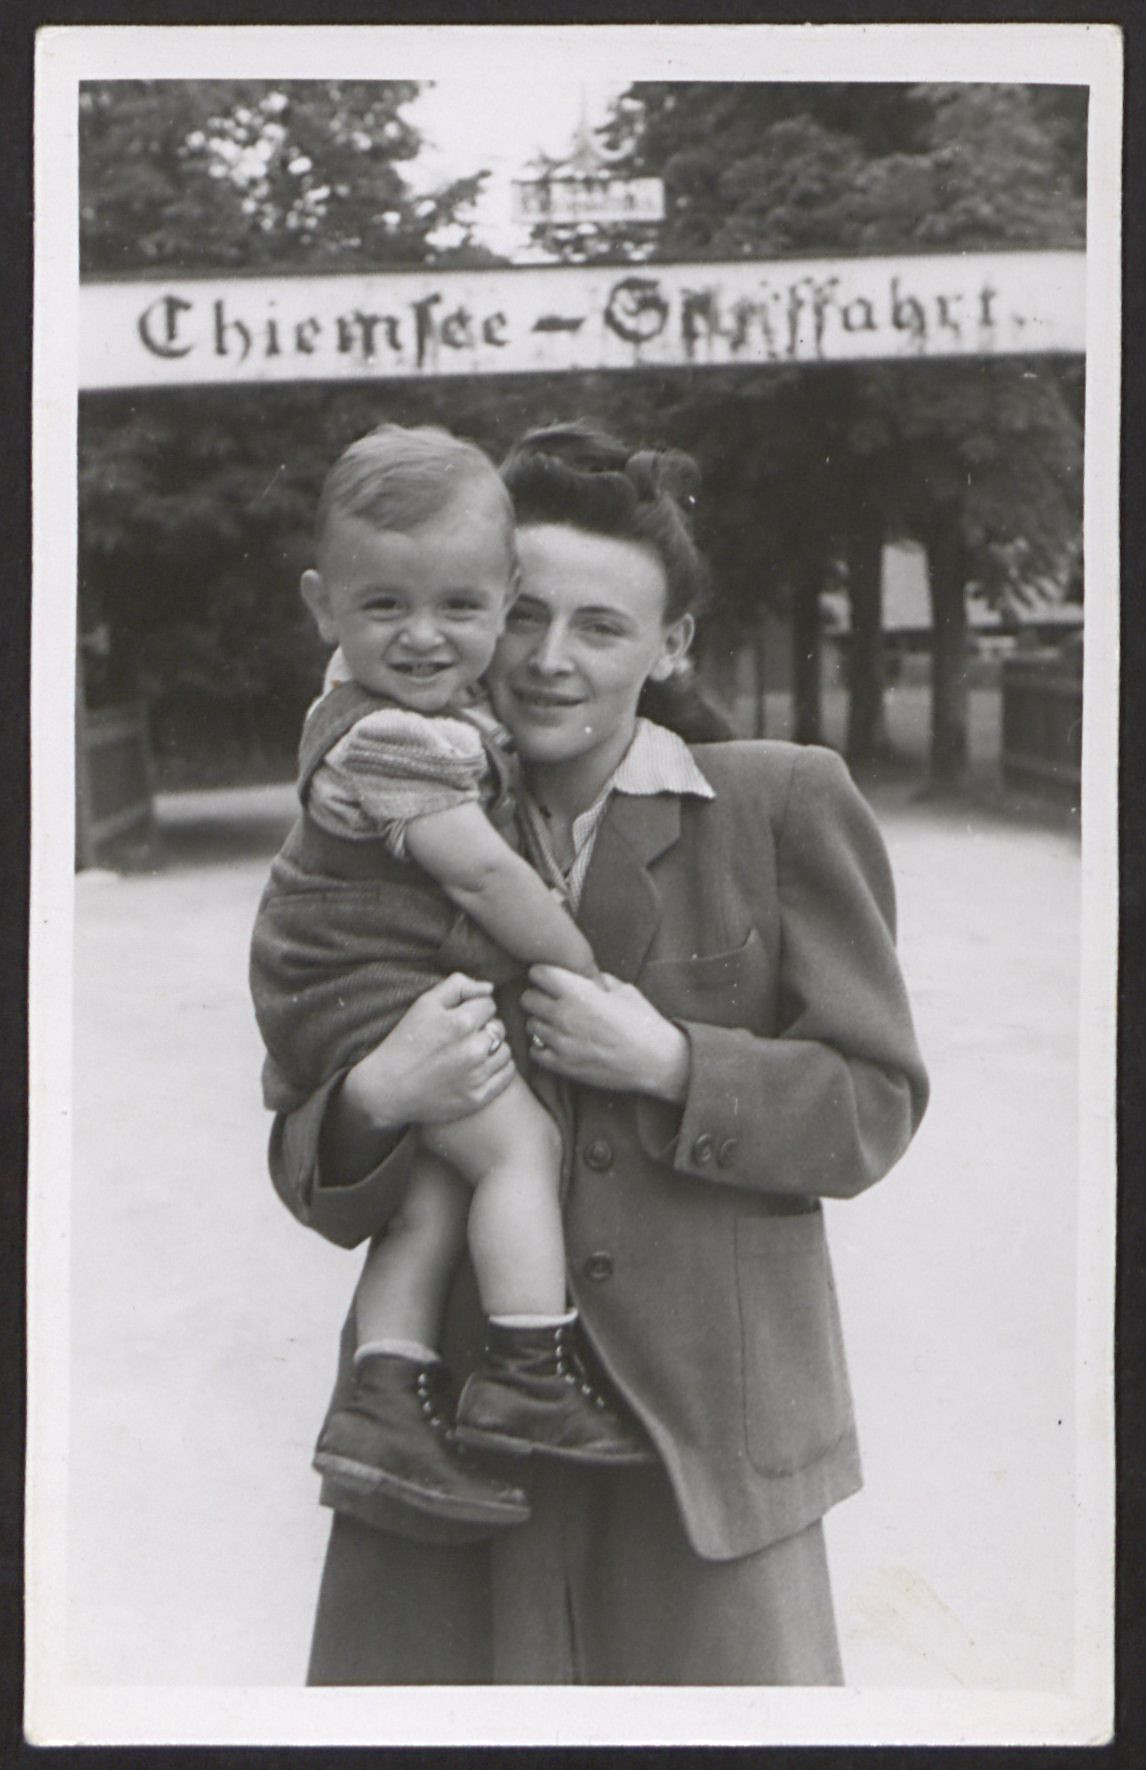 An UNRRA relief worker poses holding her son at the International Children's Center at Prien am Chiemsee.  Pictured is Judith Gruber holding her son, Jack.  Judith and her husband  Samuel Gruber were in charge of the Children's Center in Prien.